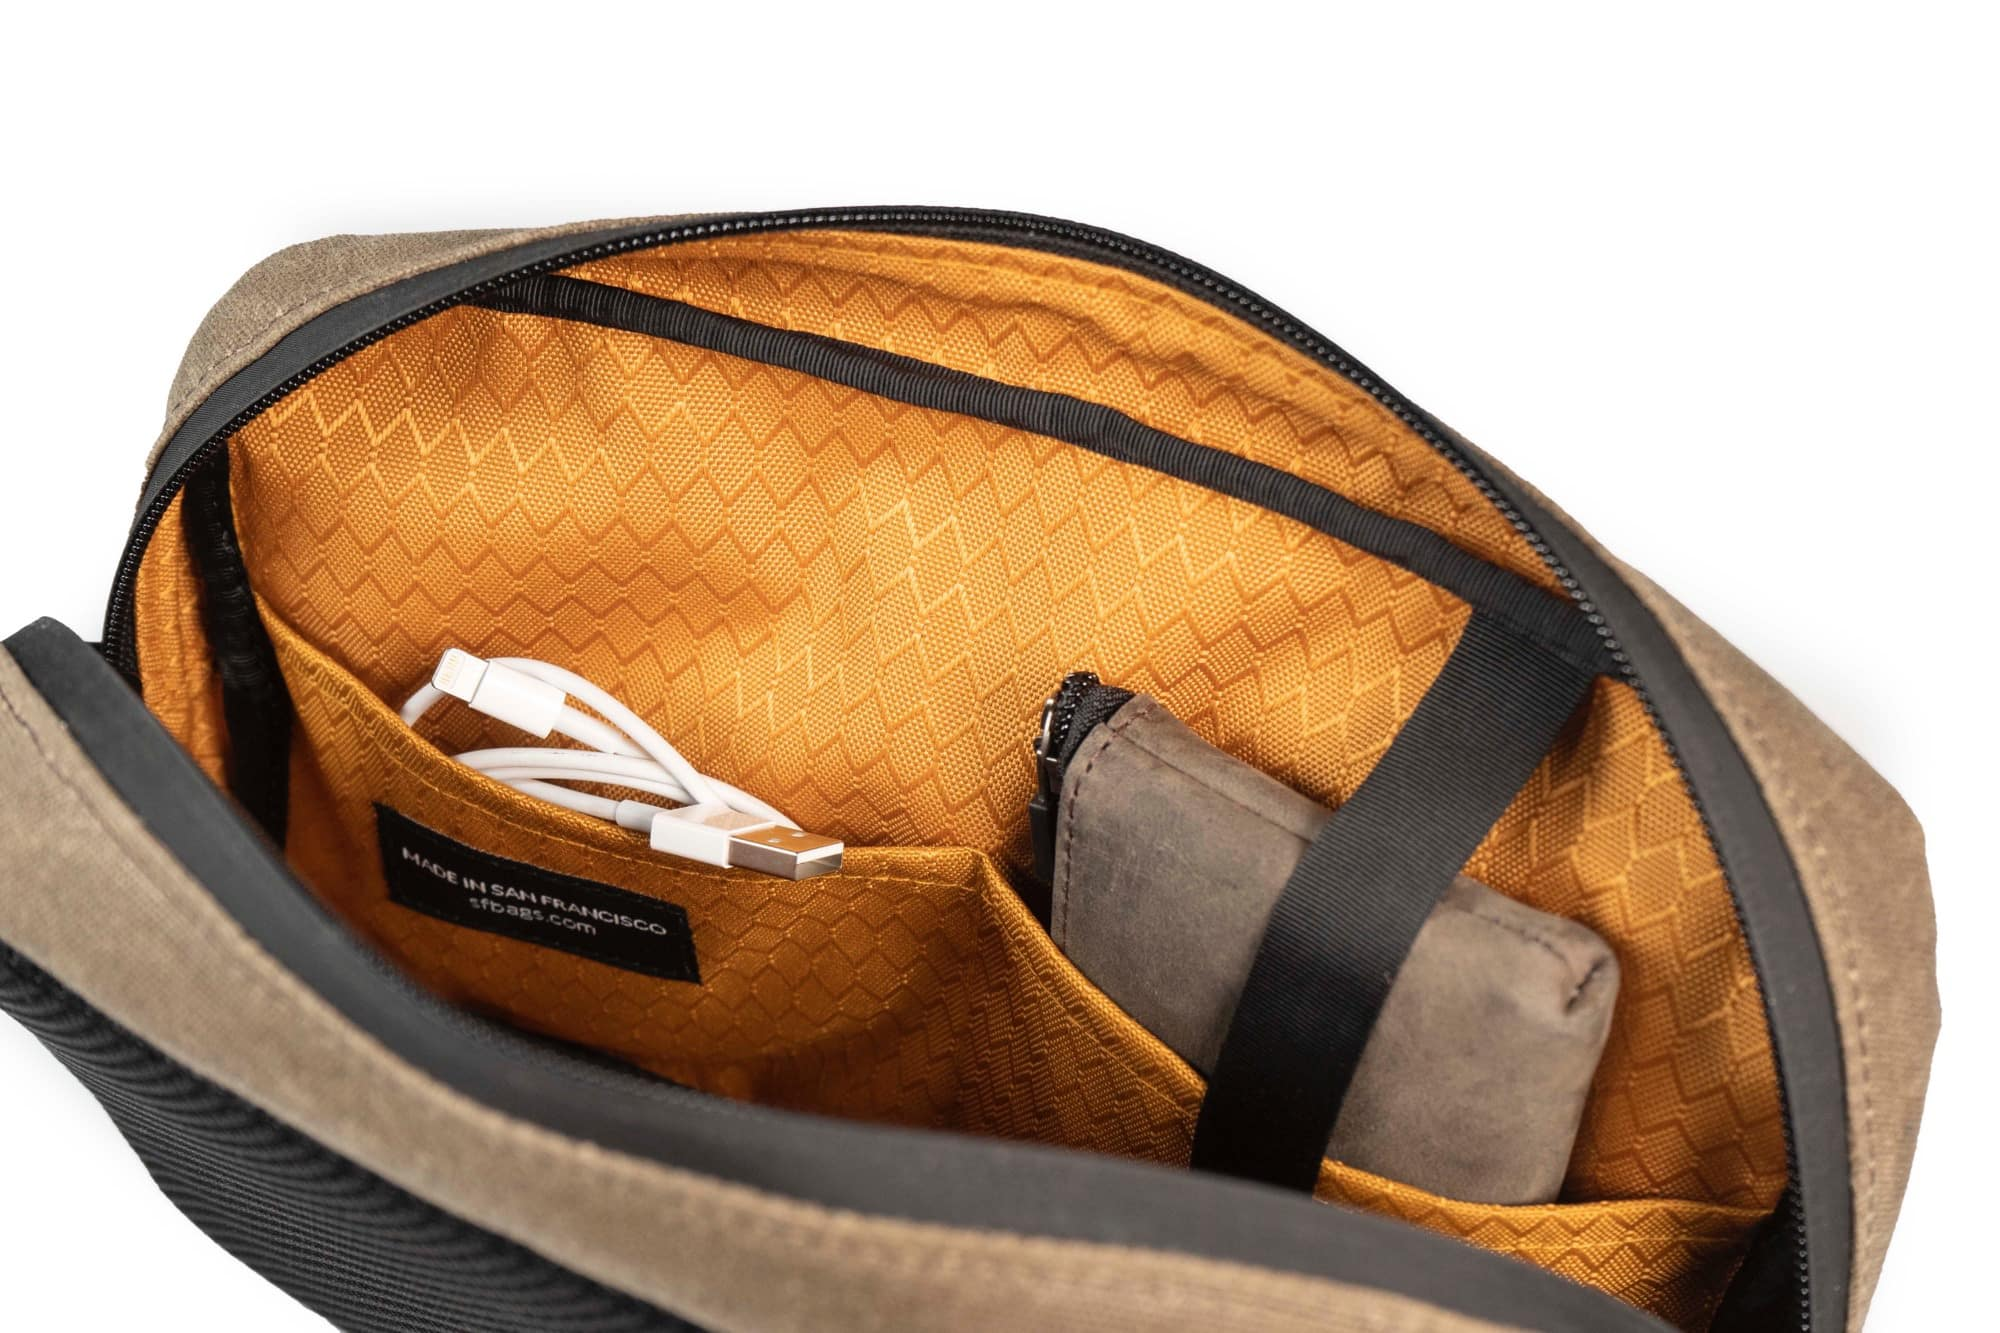 I dare you to lose something inside the Sutter Sling Pouch. I double-dare you.